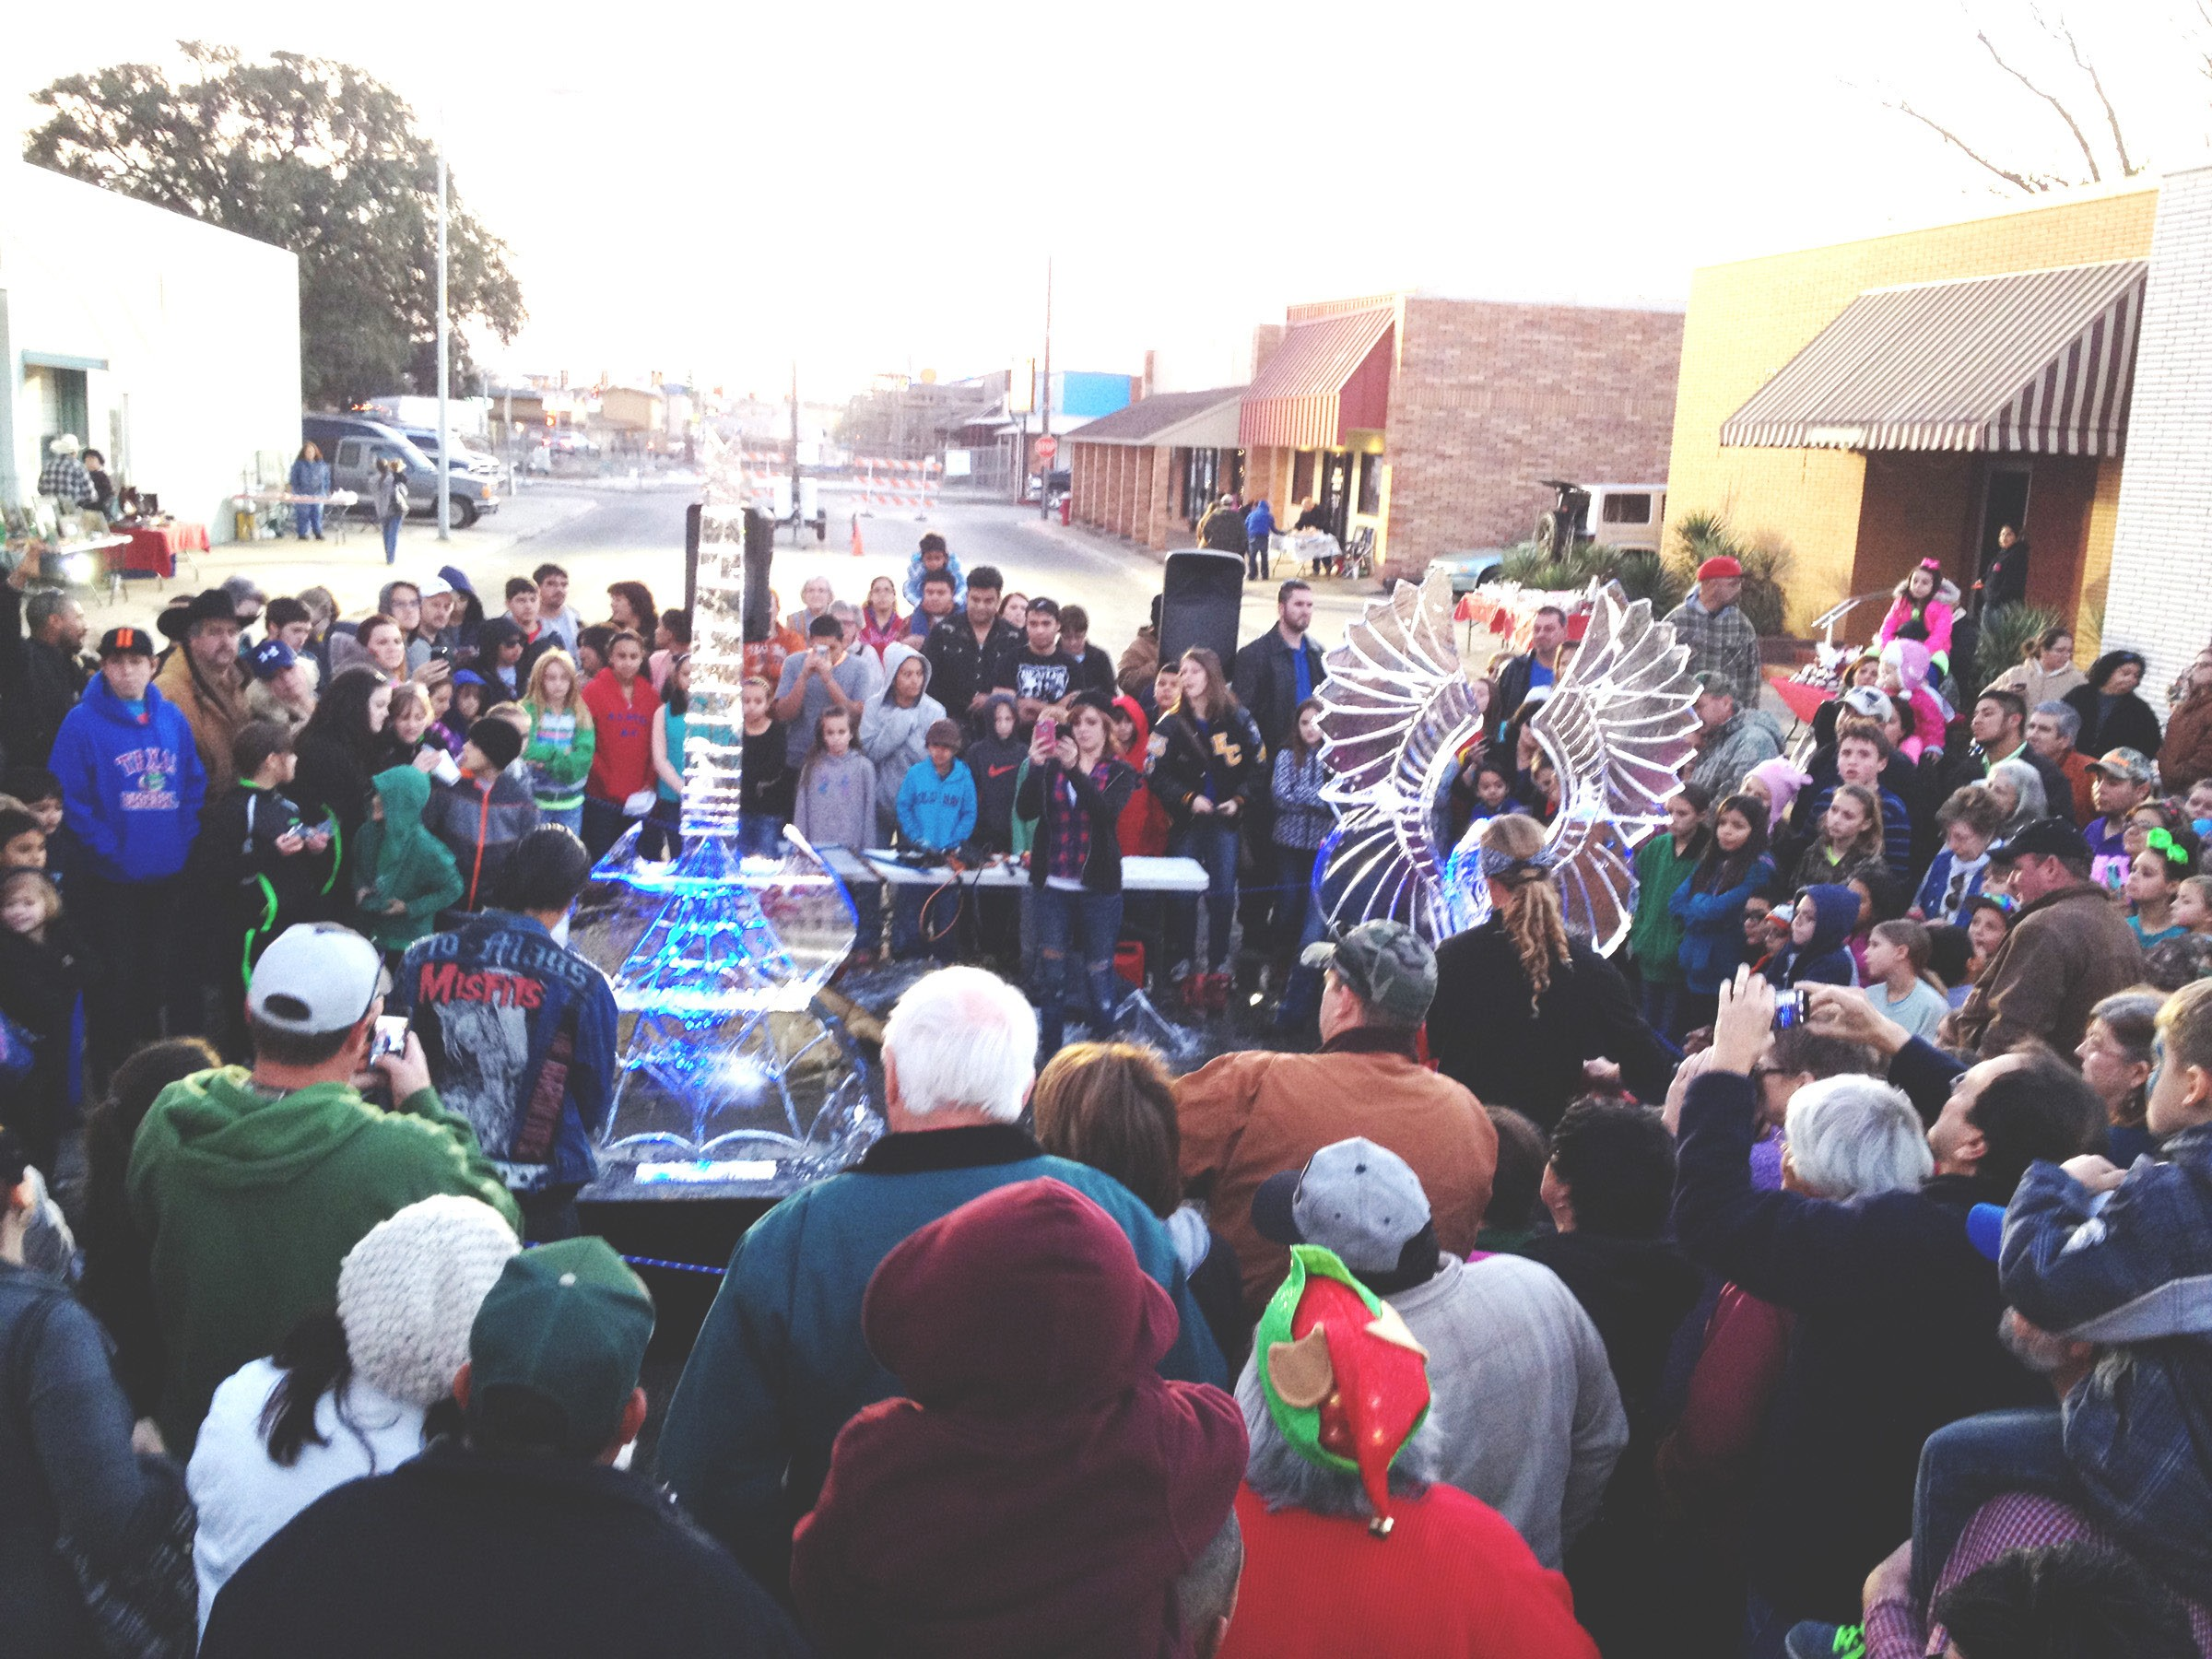 A great crowd gathered at the ice sculpting competition at last year's Downtown Pleasanton Merchants Association Art Walk. Catch it again this Saturday on Main Street beginning at 3 p.m. The Ice Fight will begin at 5 p.m.